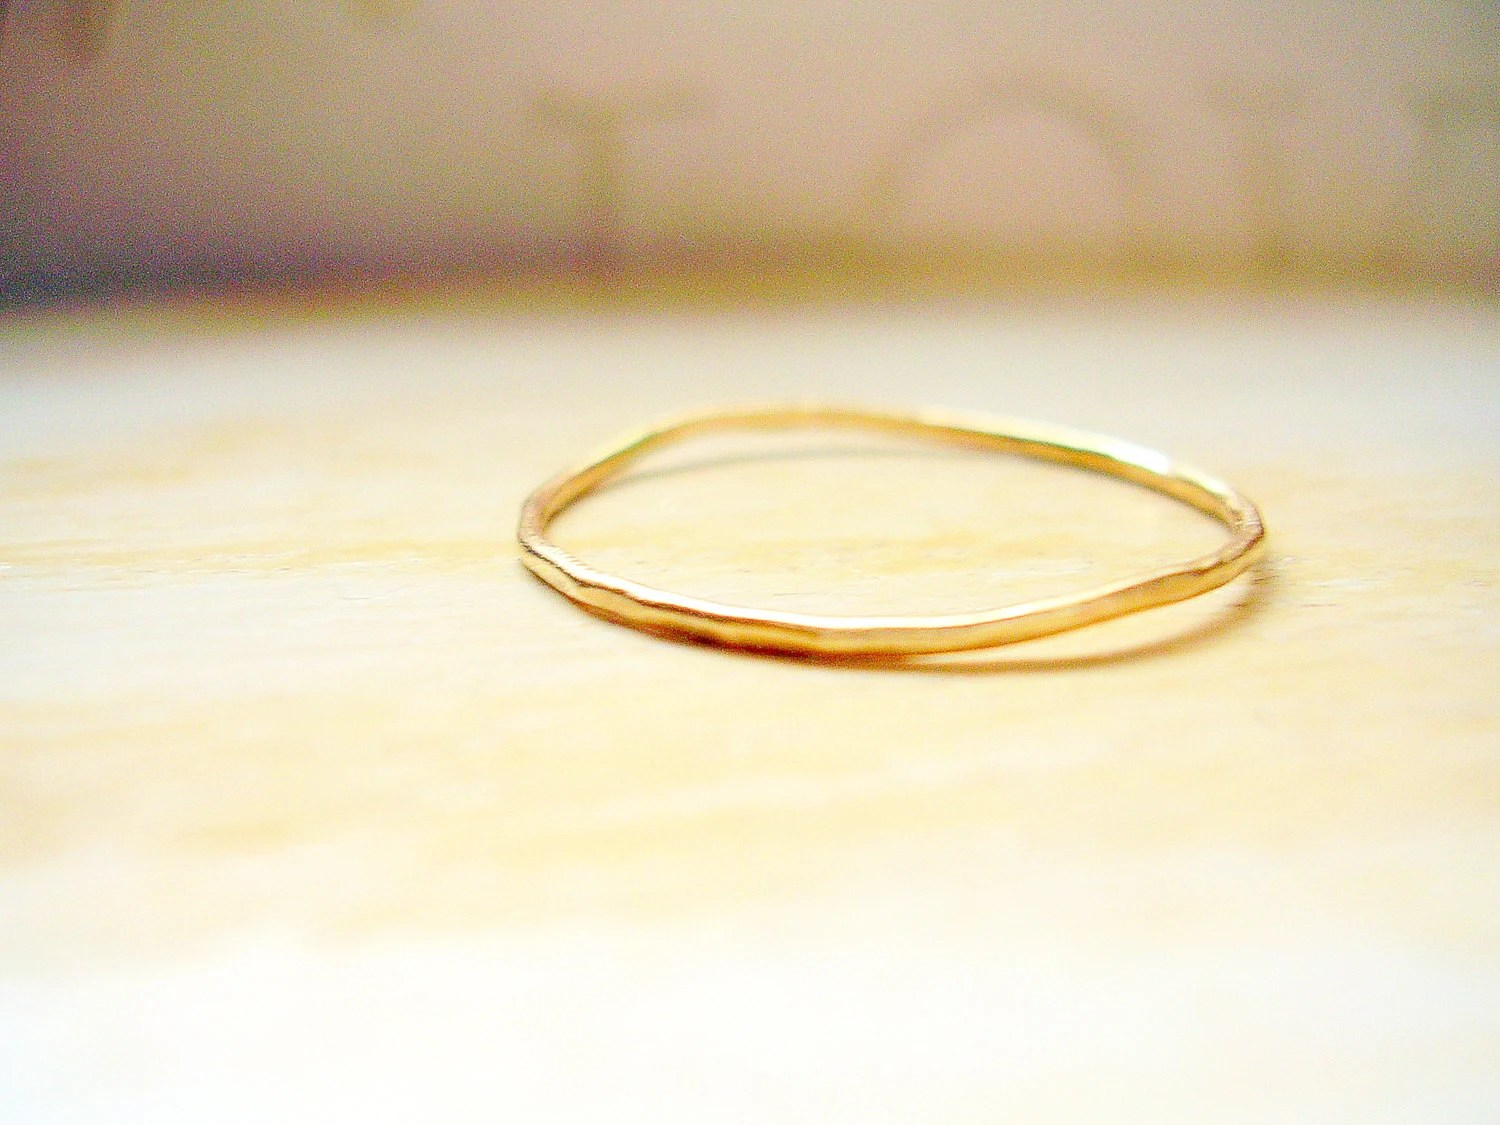 wavy wedding ring dainty wedding bands Dainty Gold Ring 14K Gold Very Thin Wedding Band Hammered Slightly Wavy Stacking Ring made to order in your finger size